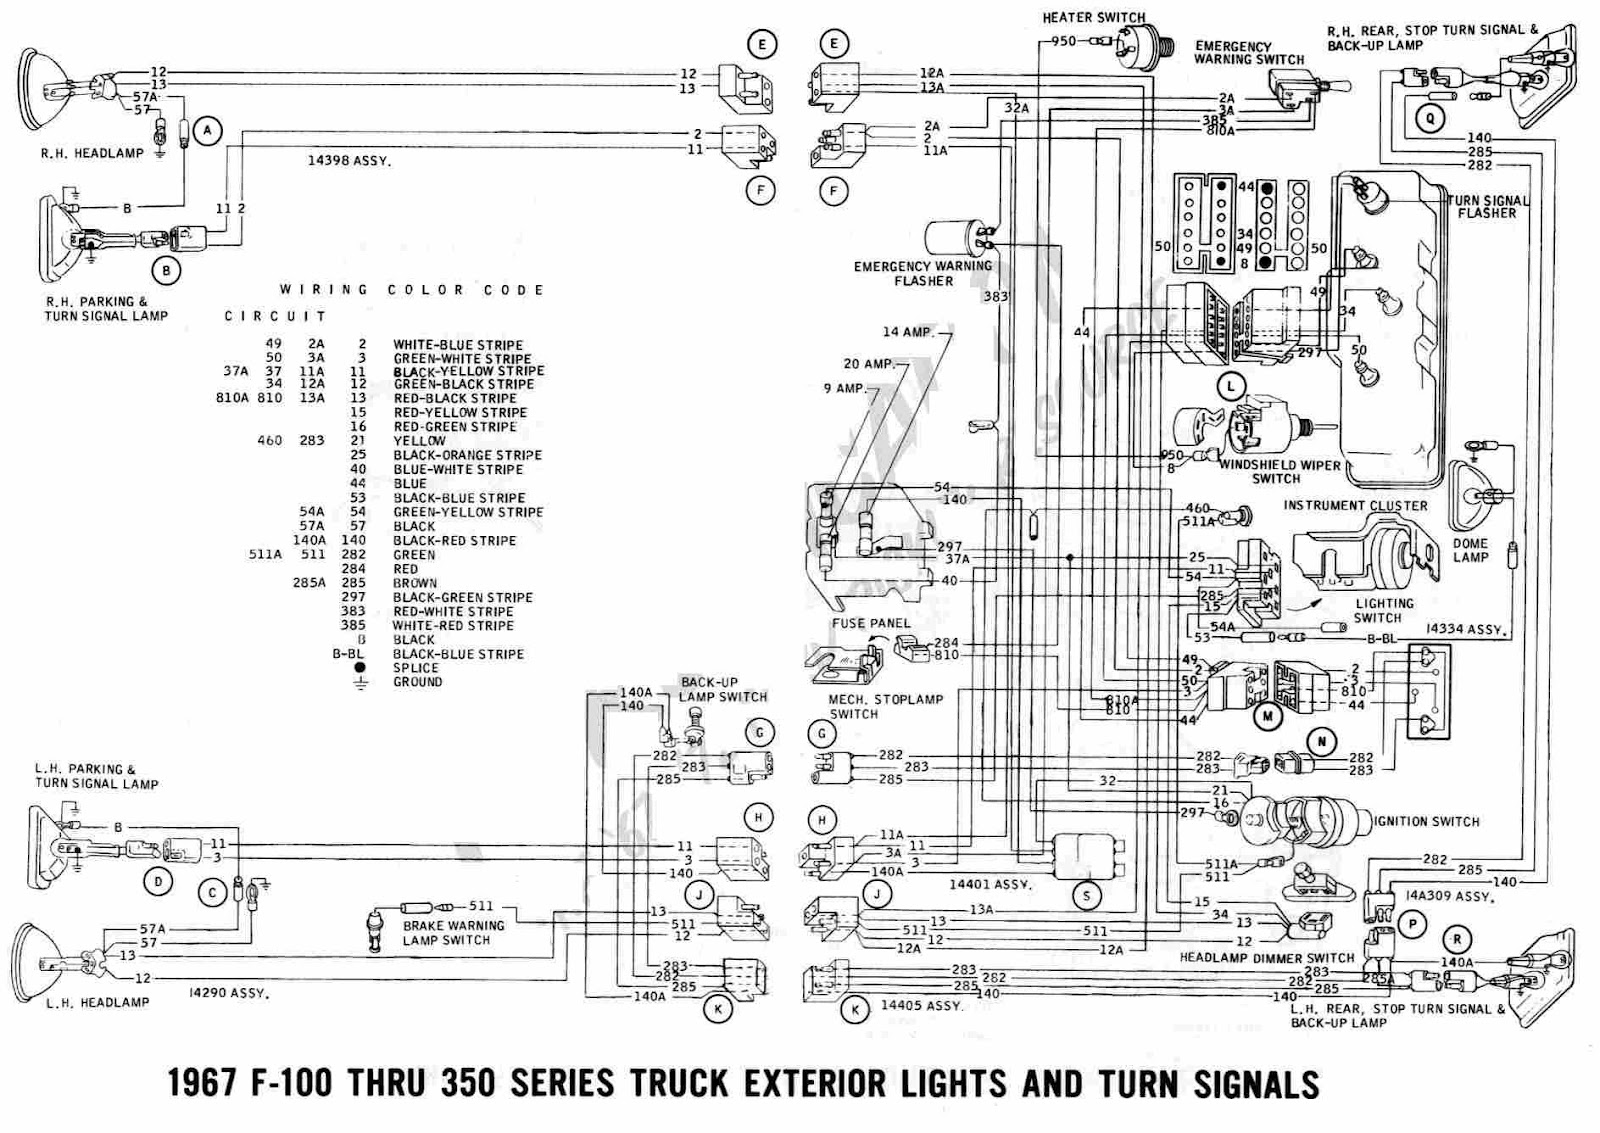 Ford+F 100+Through+F 350+Truck+1967+Exterior+Lights+and+Turn+Signals+Wiring+Diagram 1979 ford f100 turn signal wiring diagram wiring diagram simonand wiring harness for 1971 ford f100 at panicattacktreatment.co